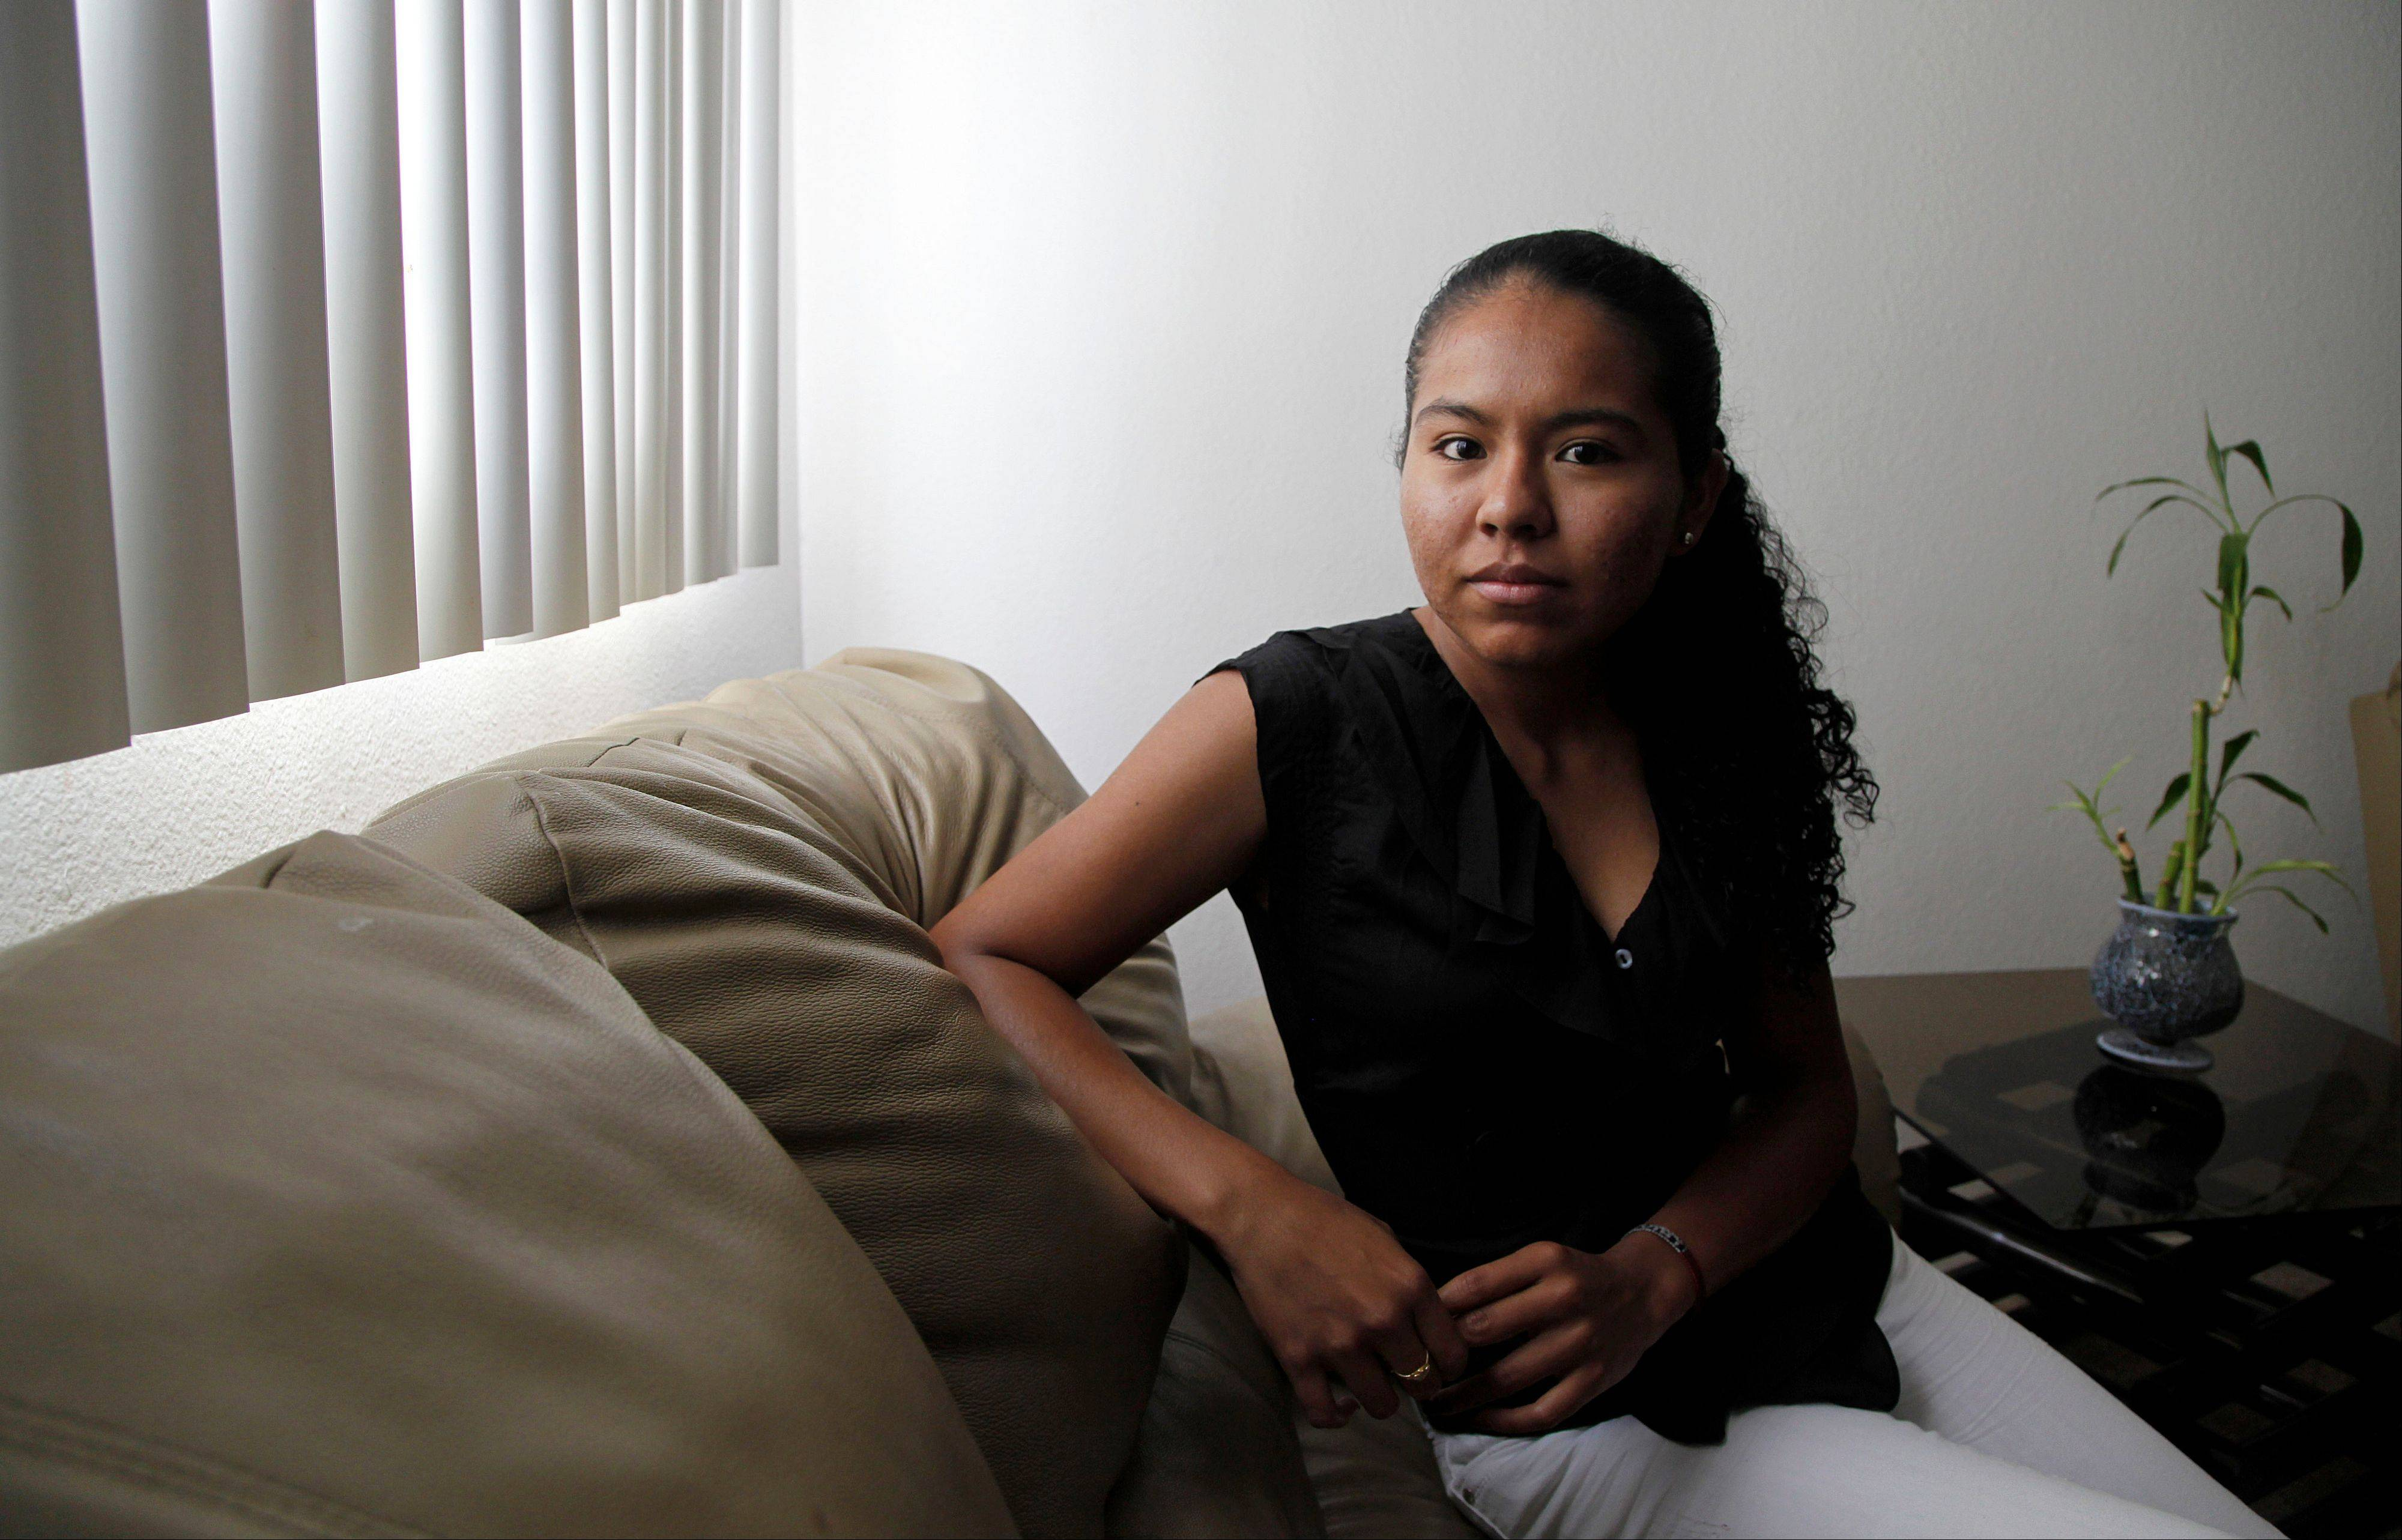 Araceli Cortes, an illegal immigrant who wants to go to medical school, is shown at her home in the Los Angeles-area suburb of Canyon Country, Calif. Cortes had made up her mind to return to Mexico to pursue her dream of becoming a doctor. She quit her job, purchased an airline ticket and reserved a seat to take a medical school entrance exam. Then, a week before her departure, President Barack Obama announced that young illegal immigrants like Cortes would be given the chance to remain in the United States and obtain a work visa. Cortes canceled her ticket and decided to stay. But sheís still having second thoughts.